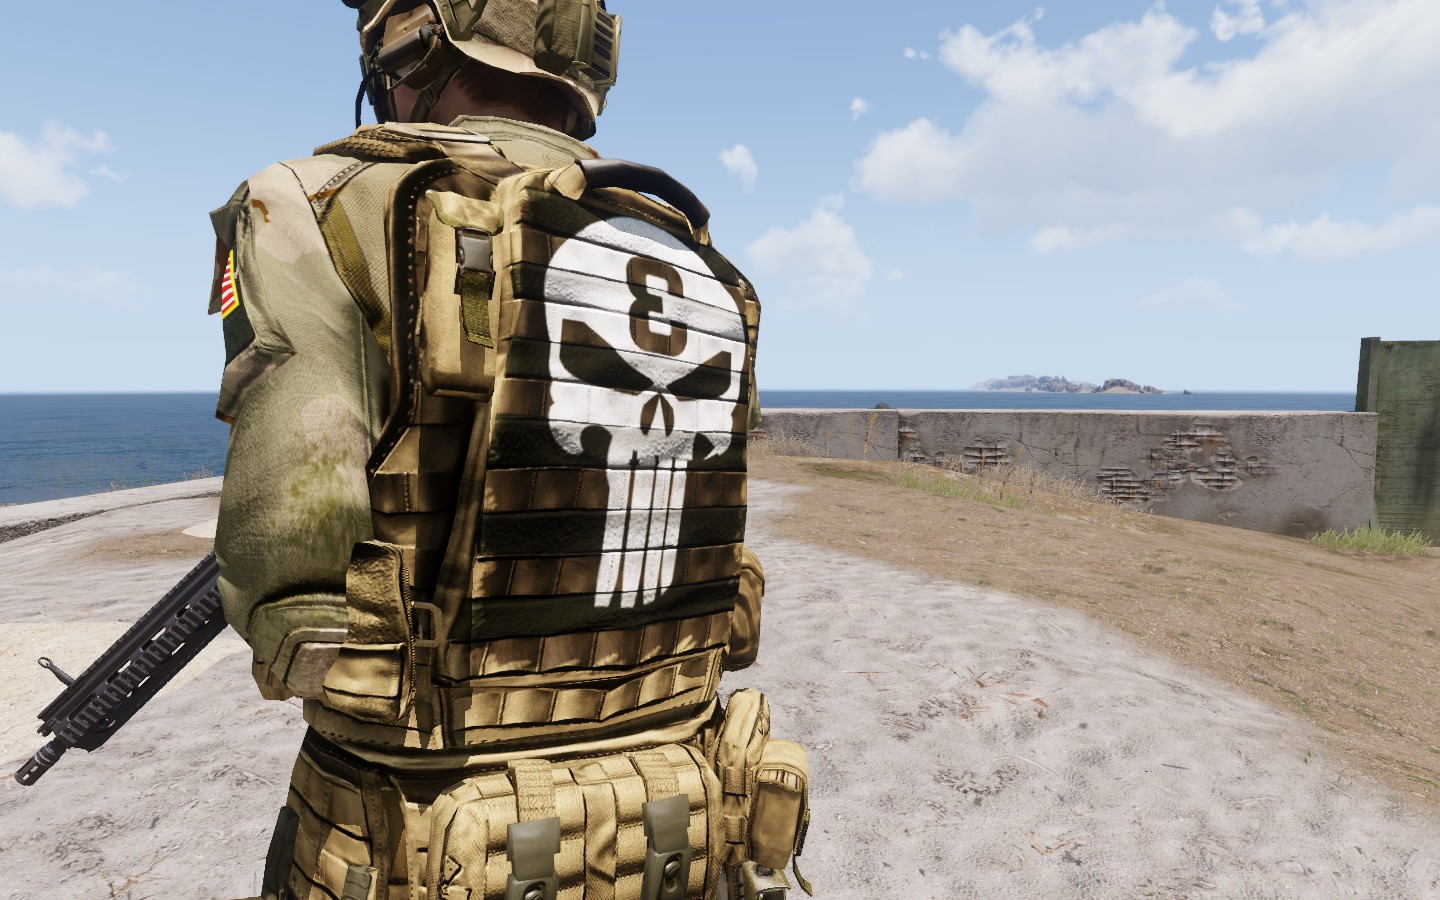 NAVY SEAL THE PUNISHER & NAVY SEAL SPARTAN (TEXTURE HD